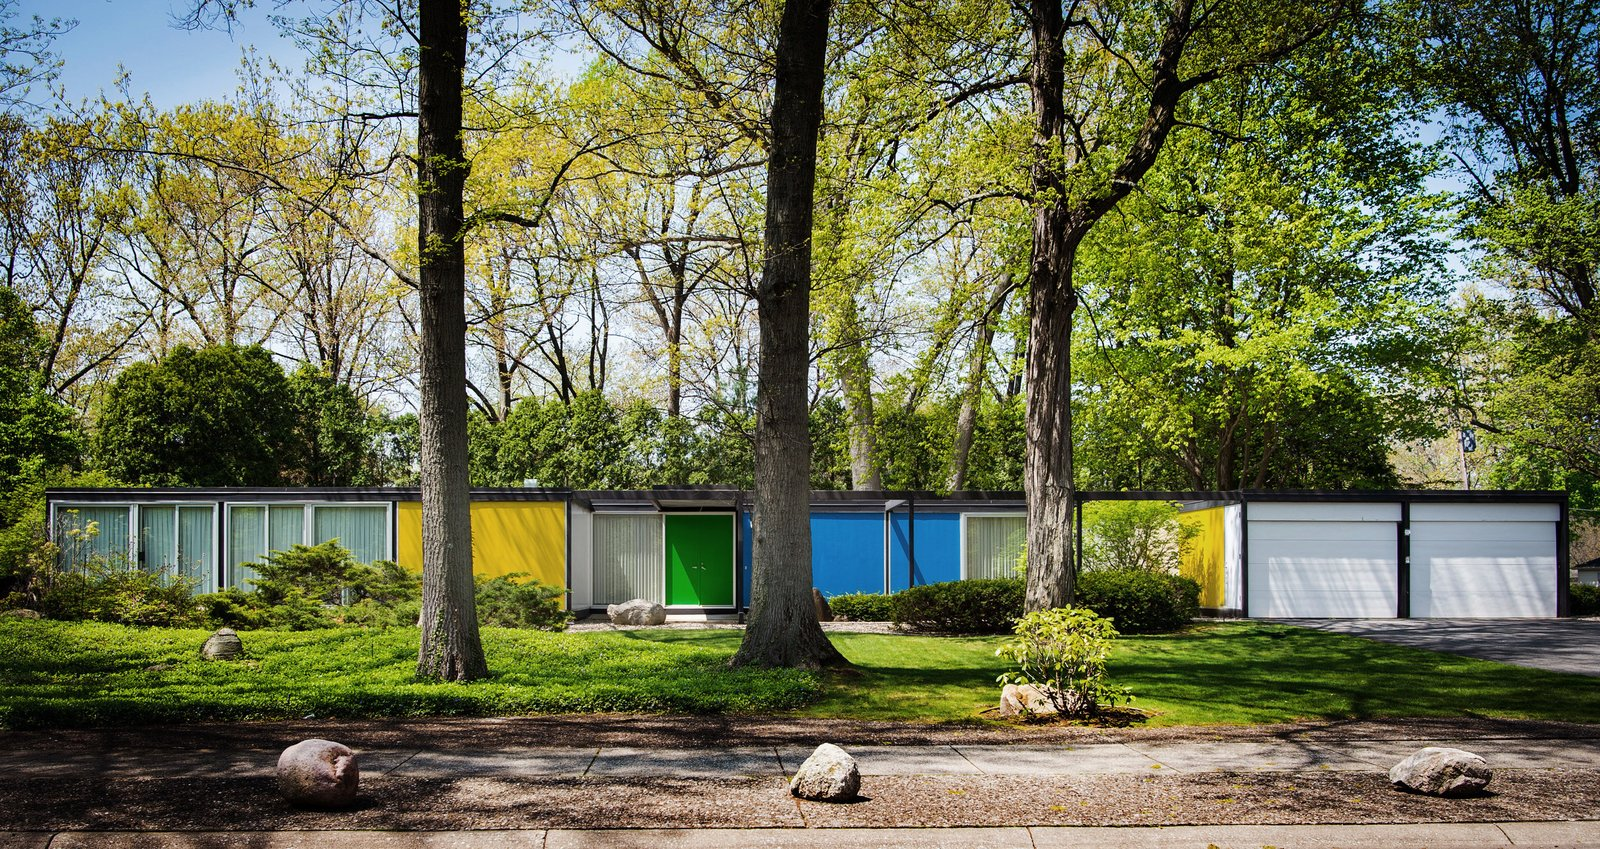 Exterior, House Building Type, Flat RoofLine, and Prefab Building Type Built with a steel frame, the Frost House features panels of styrofoam between aluminum sheets for the exterior walls and styrofoam between plywood for the roof and floors. Bold, primary colors accentuate its geometric form.   Shortly after Karen Valentine and Bob Coscarelli purchased the home in 2016, they began to unearth nuggets of information about its pedigree. Their realtor had provided a brochure that identified the prefab as designed by architect Emil Tessin for the now-defunct Alside Homes Corporation based out of Akron, Ohio, which had held a patent for the structure's aluminum paneling. Their new neighbors provided a stack of Alside Homes sales materials, floor plans of various models, and even a script that had been written for salespeople during home tours. They determined that the Frost House had been a sales model for the company, and that Tessin had been the son of Emil Albert Tessin, the legal guardian of Florence Knoll.  Photo 1 of 14 in A Rare Midcentury Prefab Looks Just Like it Did in 1958—Down to the Knoll and Paul McCobb Interiors